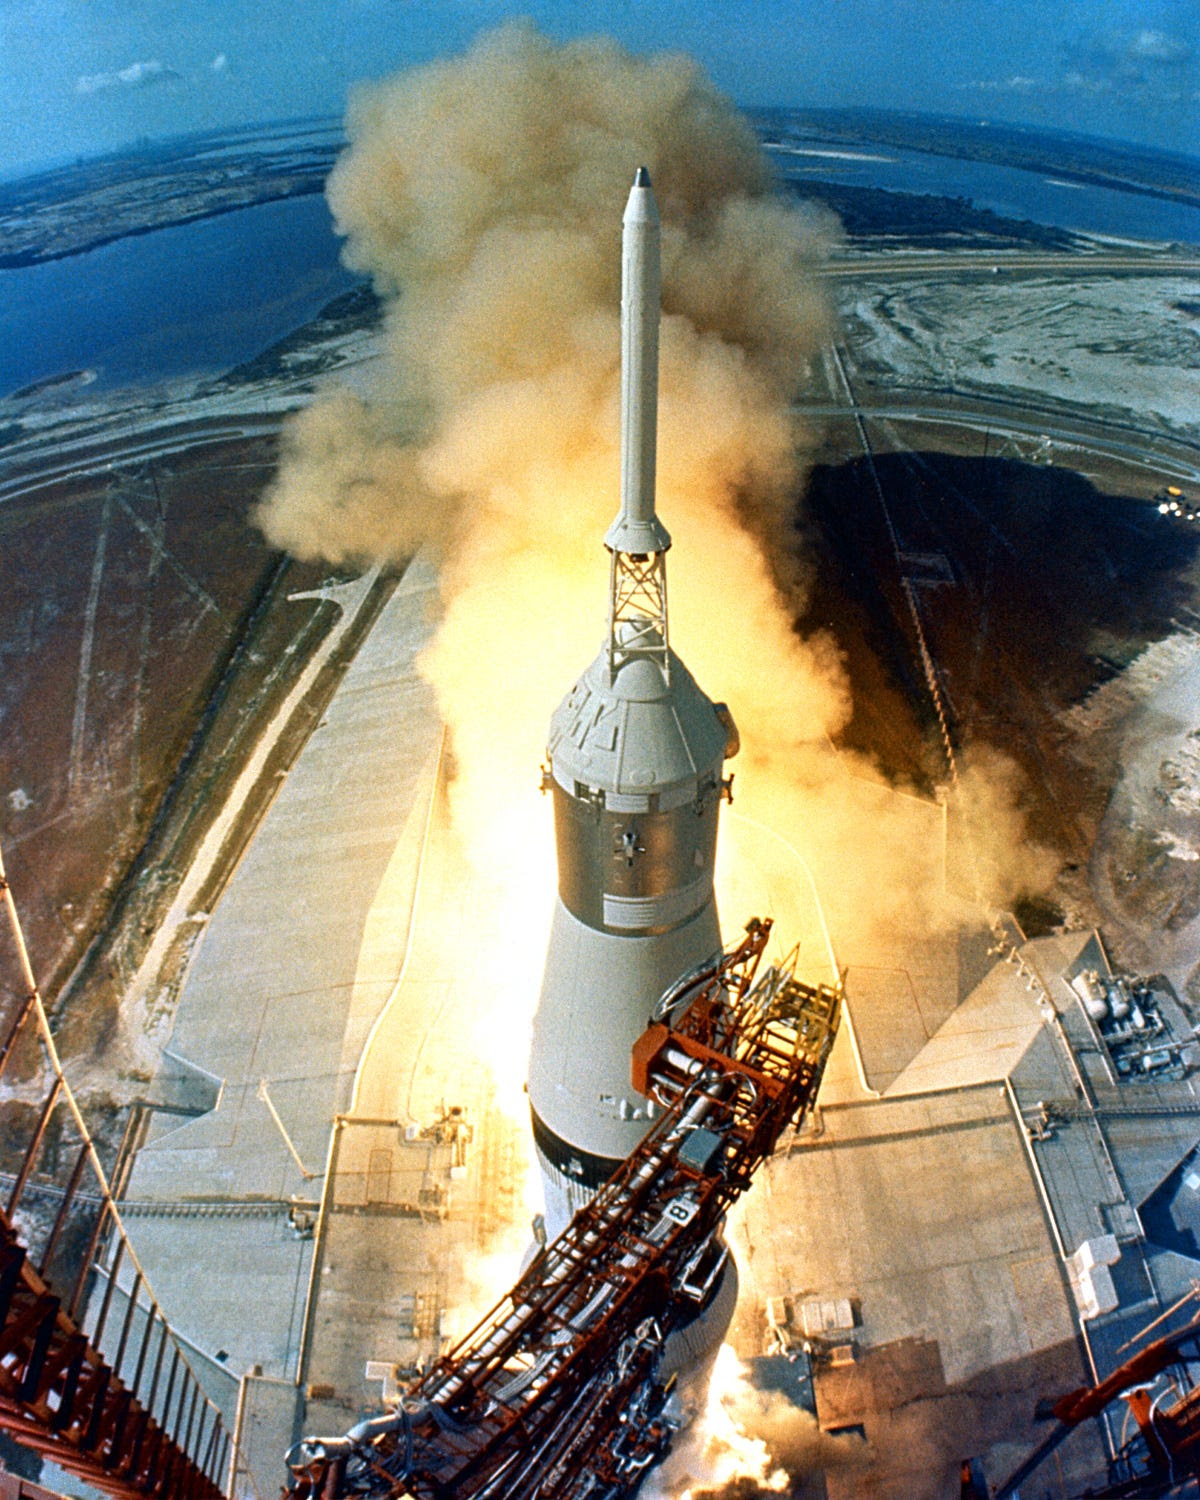 The Saturn V was designed to fly three astronauts at a time. At launch, it weighed 6.54 million pounds and towered 363 feet tall — about 60 feet taller than the Statue of Liberty.